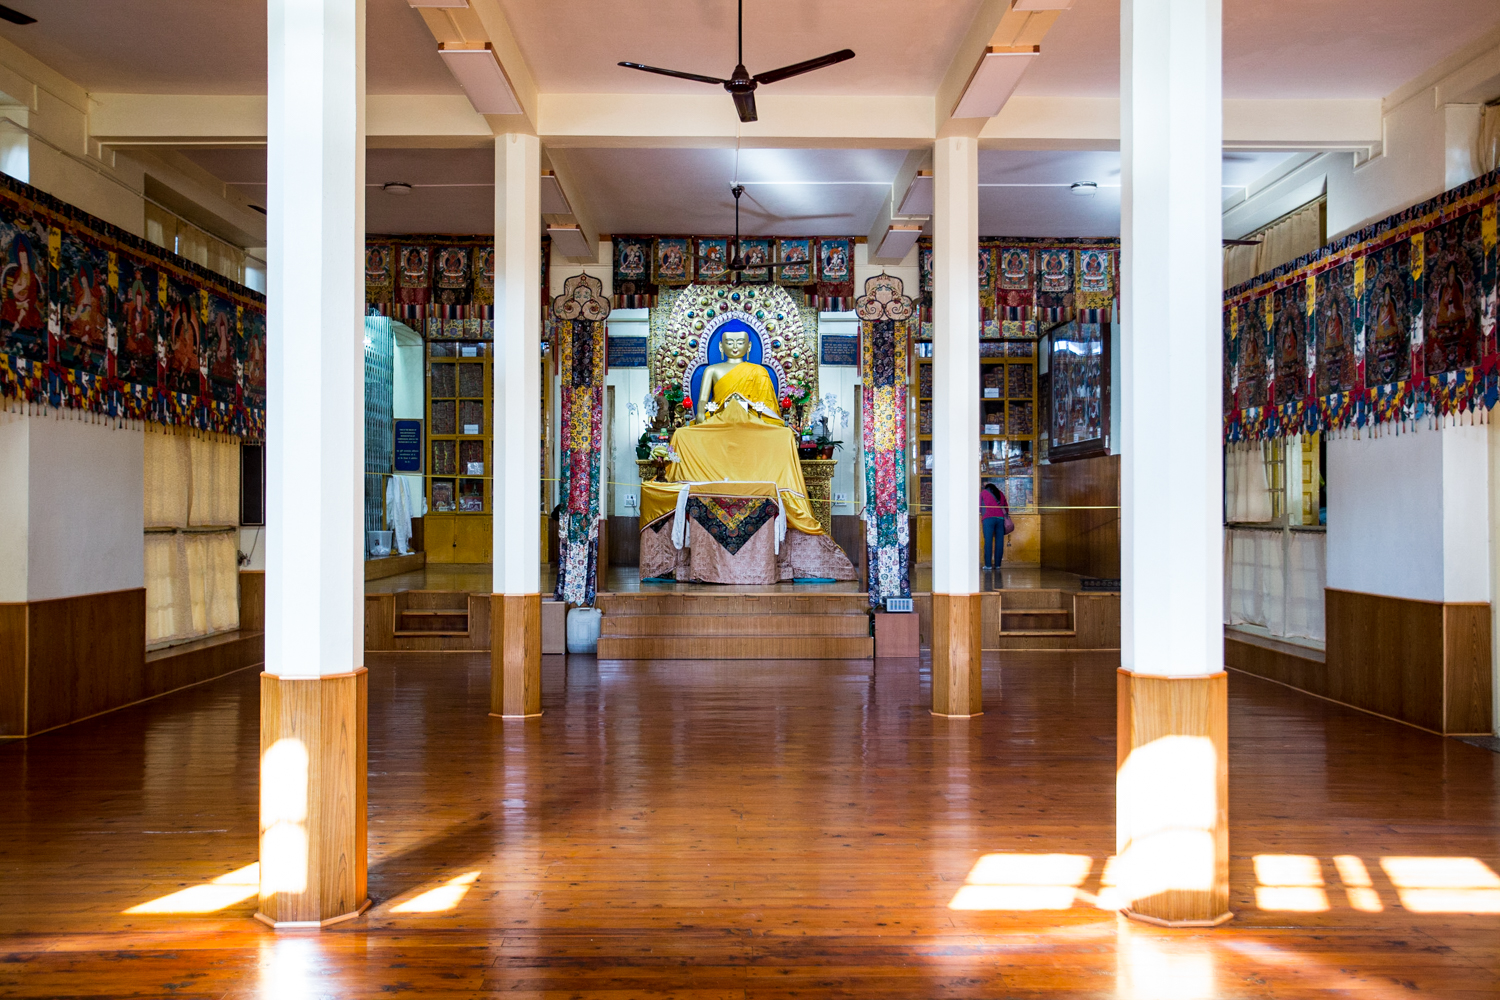 The main hall of the Tsuglagkhang Temple. The Dalai Lama established his residence in Dharamshala in 1960. Since that time, the region has served as the political and spiritual center for the Tibetan people in exile.